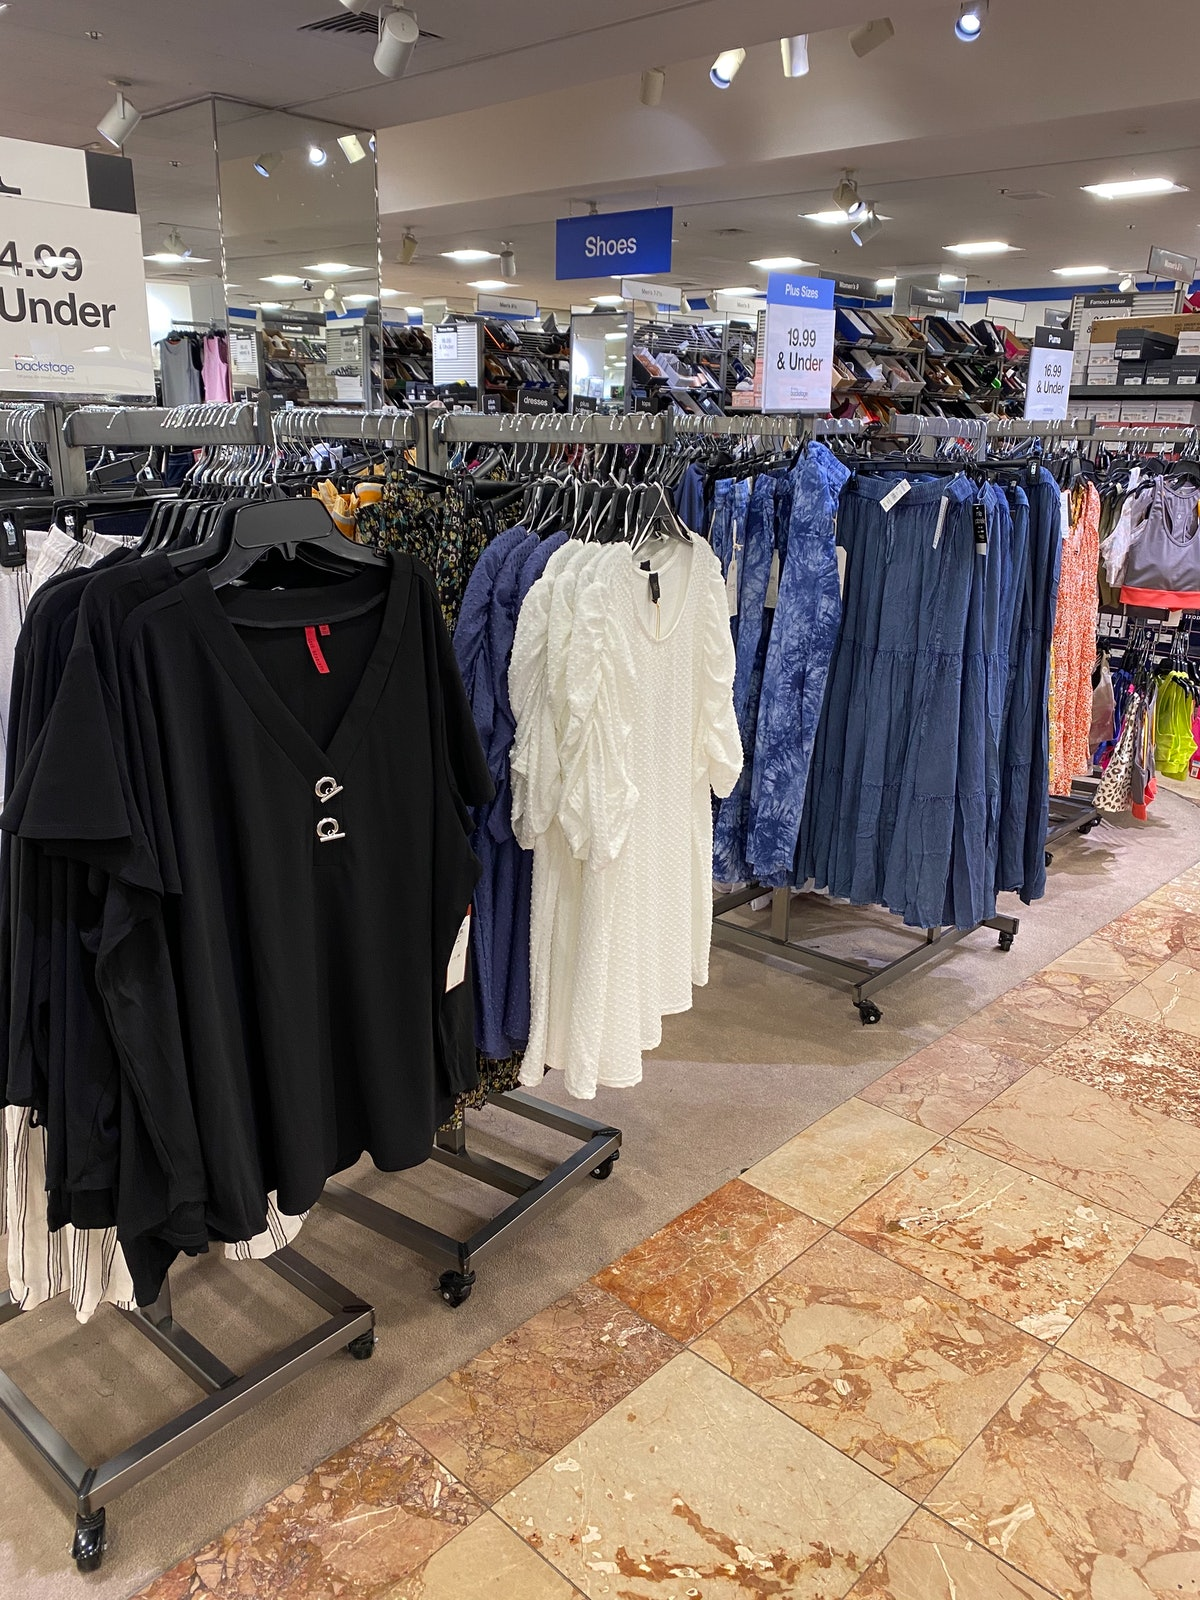 Plus-size clothing in Macy's backstage at Macy's